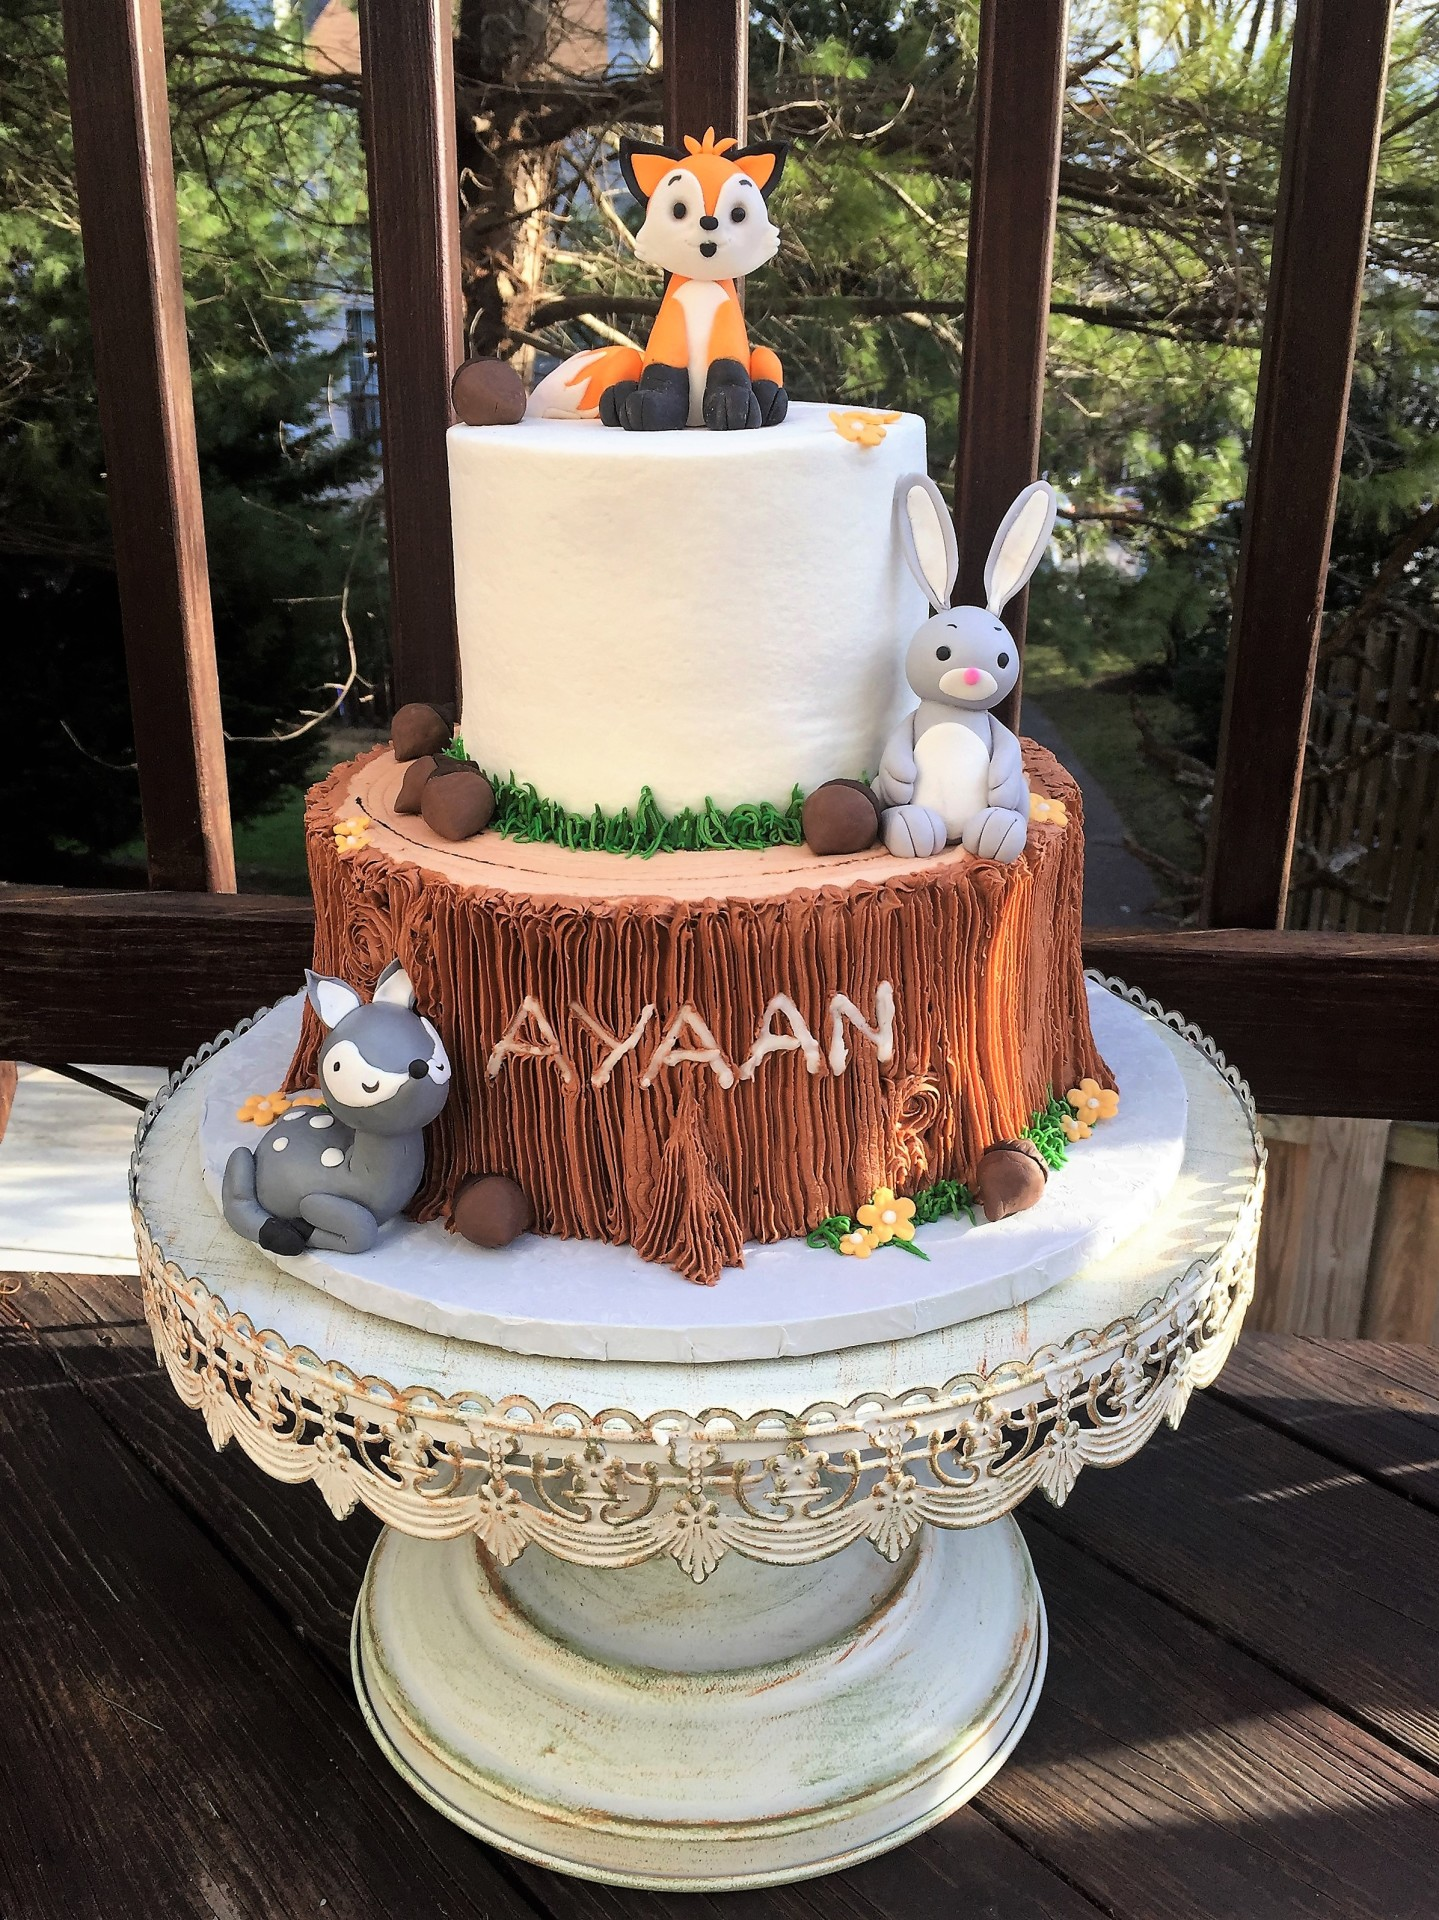 Woodlands theme buttercream cake with fondant animals